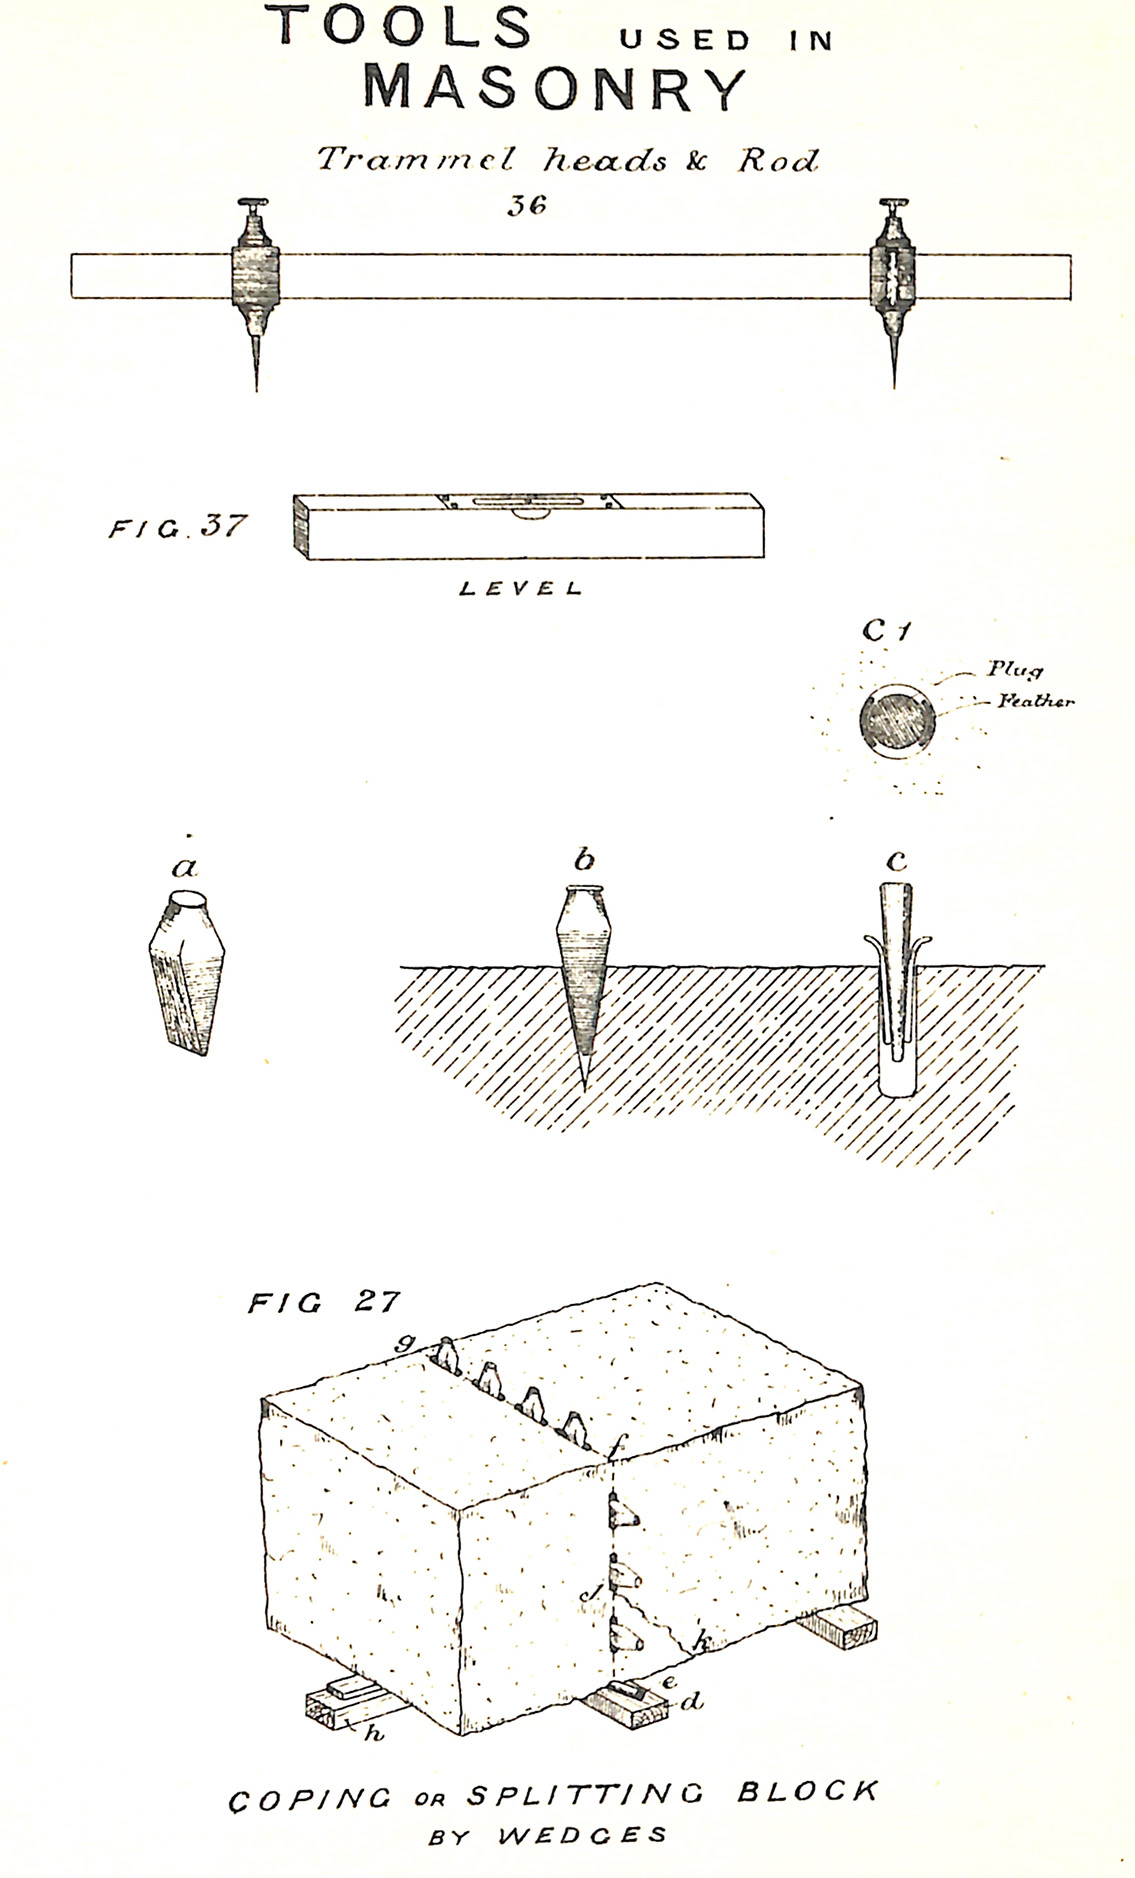 Tools used in Masonry